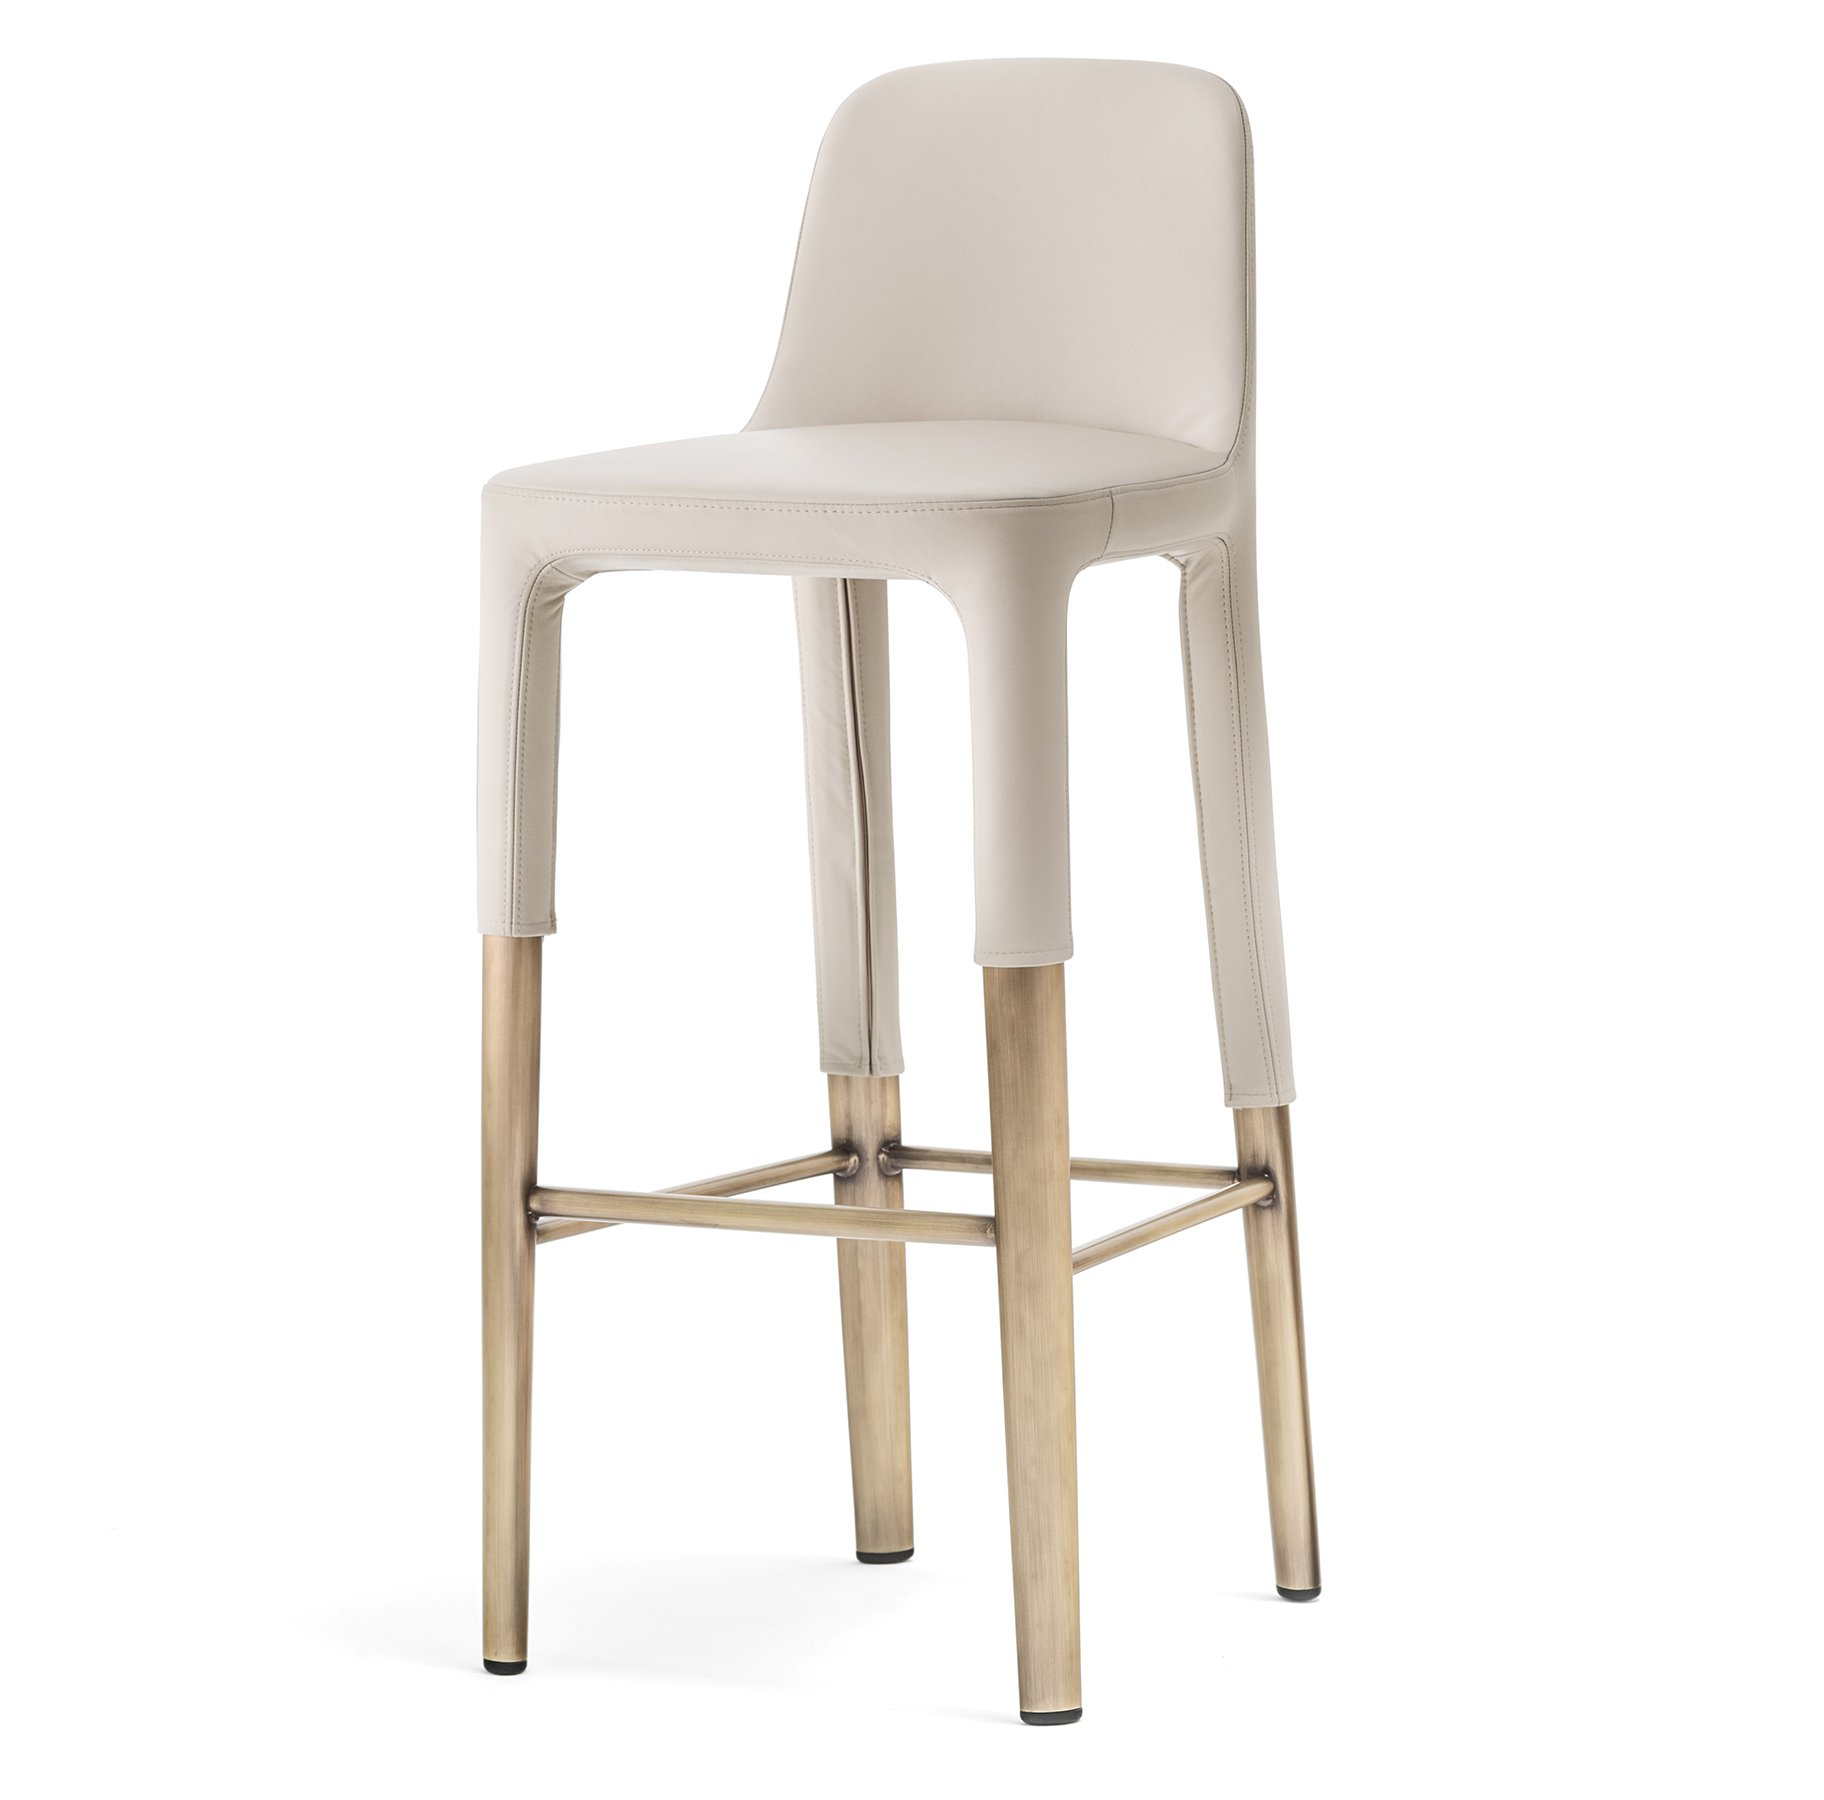 Ester 698 stool from Pedrali, designed by Patrick Jouin